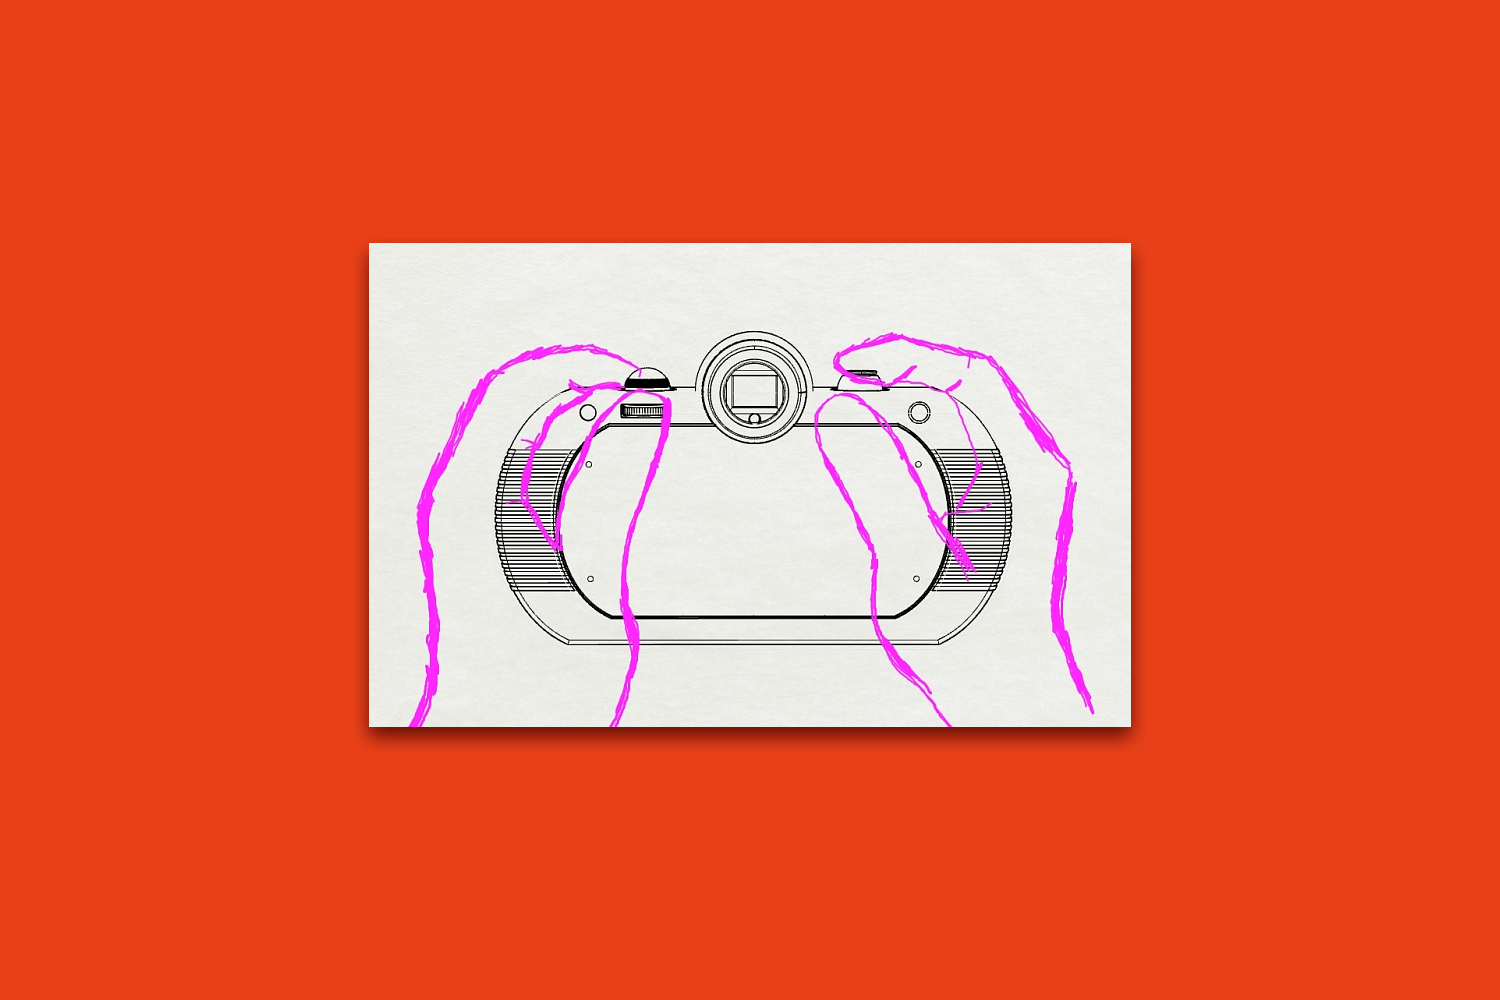 LEICA_5.png